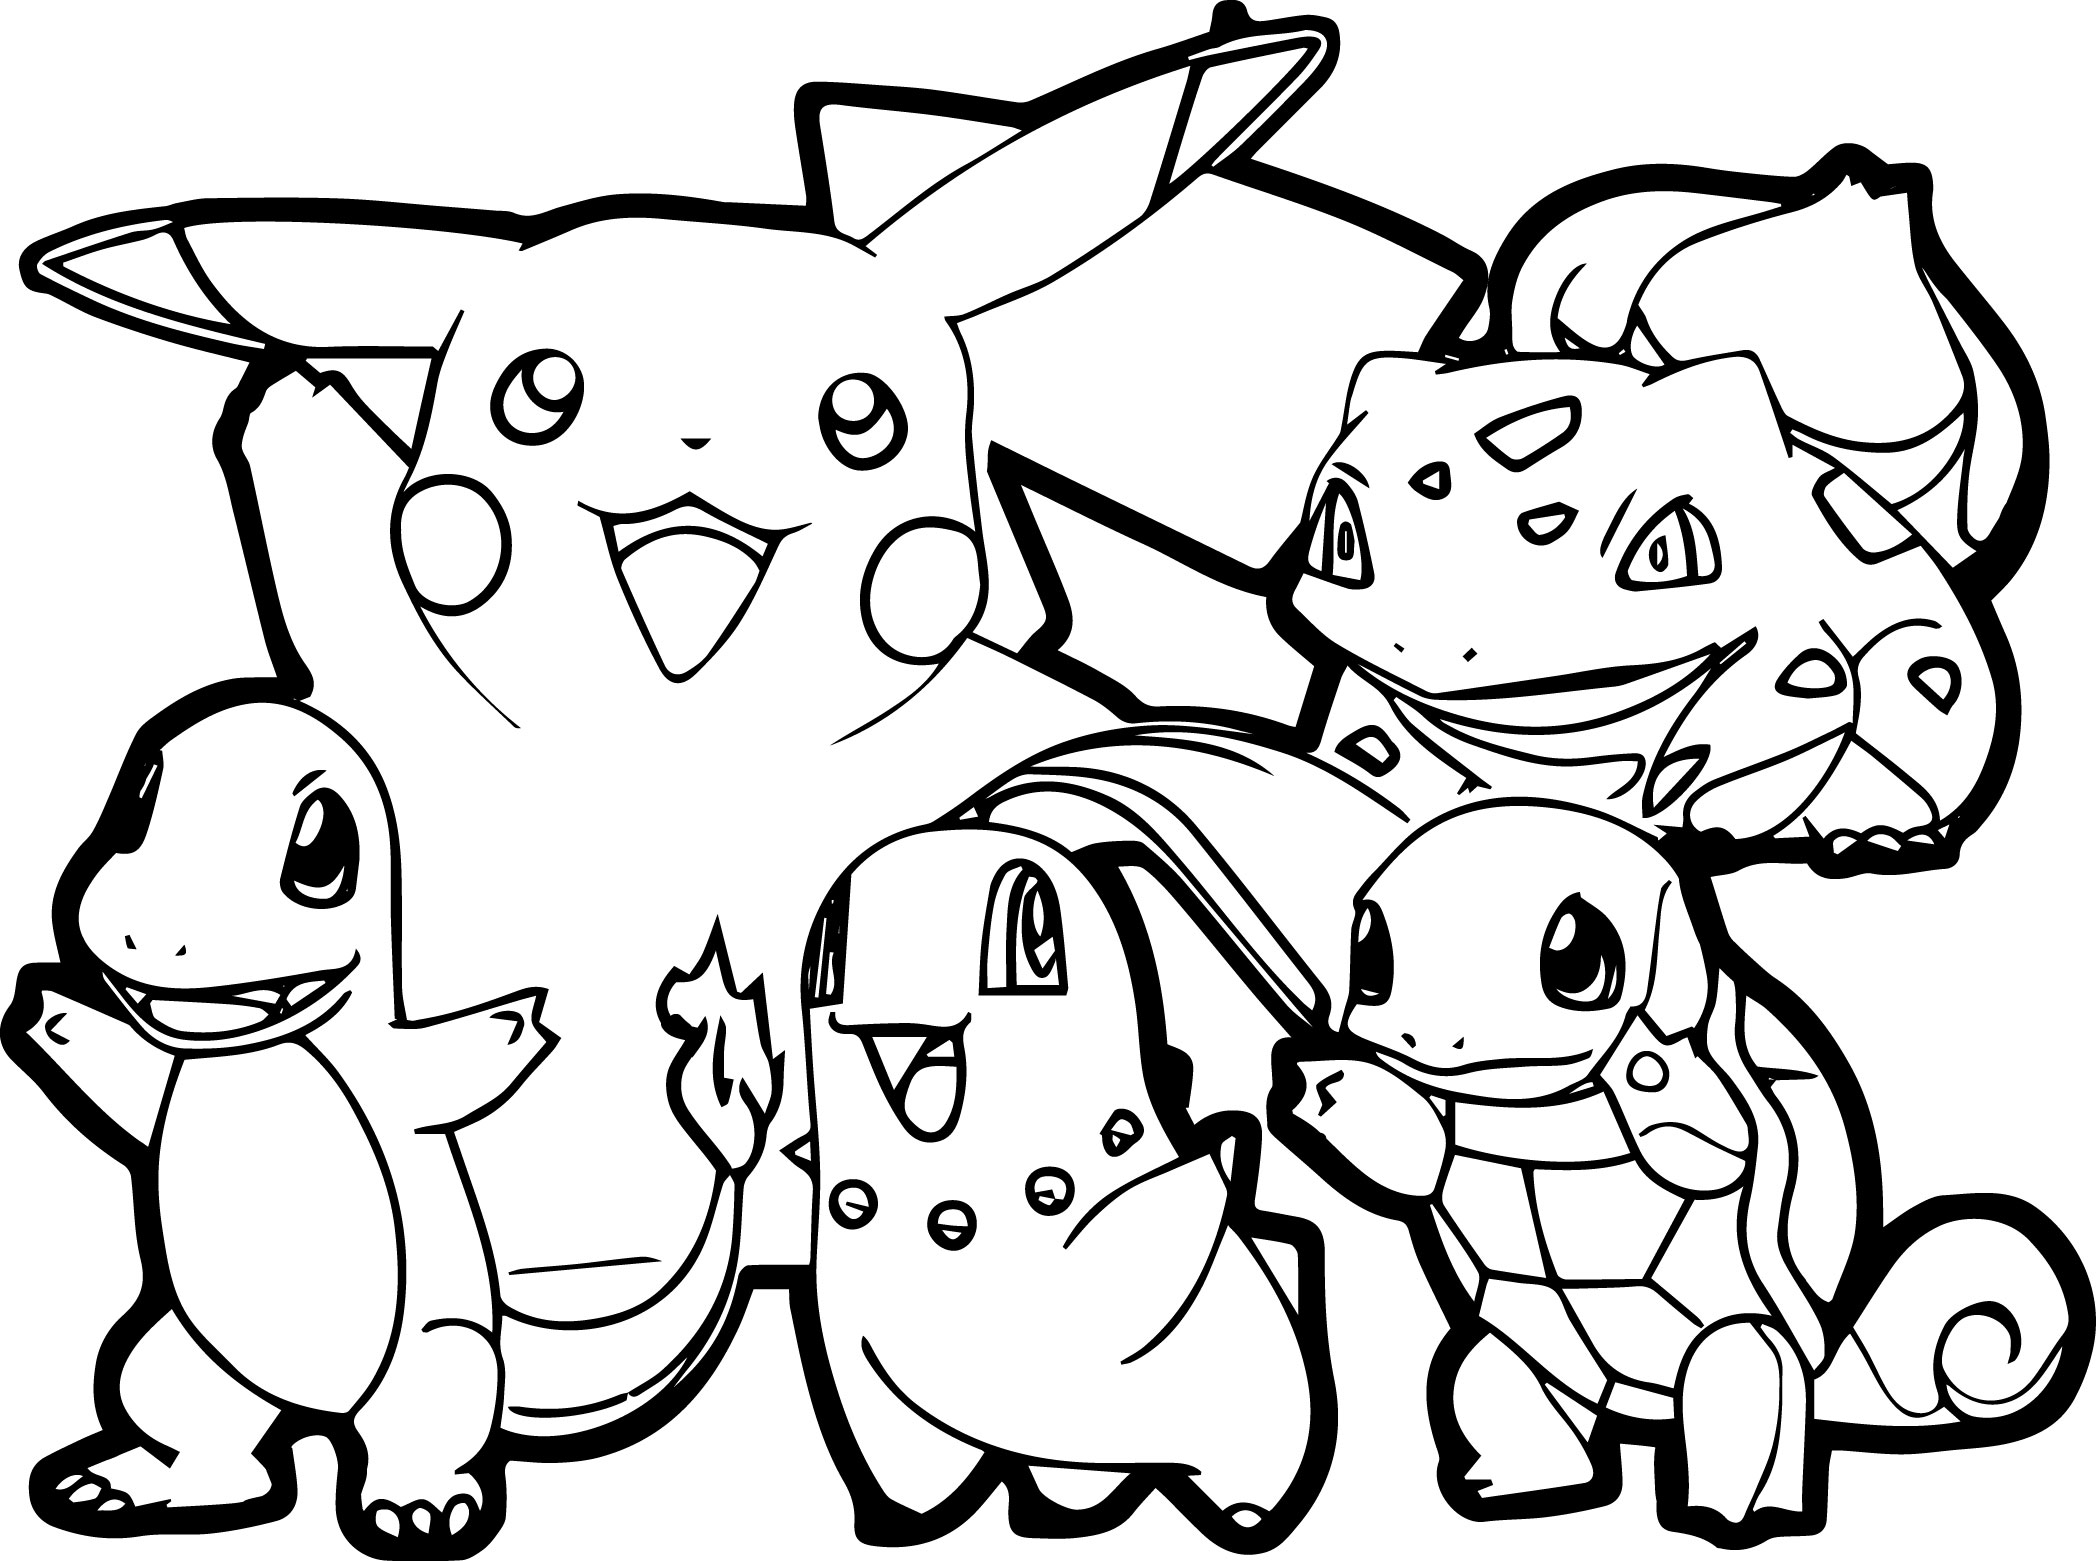 pokemon pictures to color pokemon go coloring pages best coloring pages for kids color to pokemon pictures